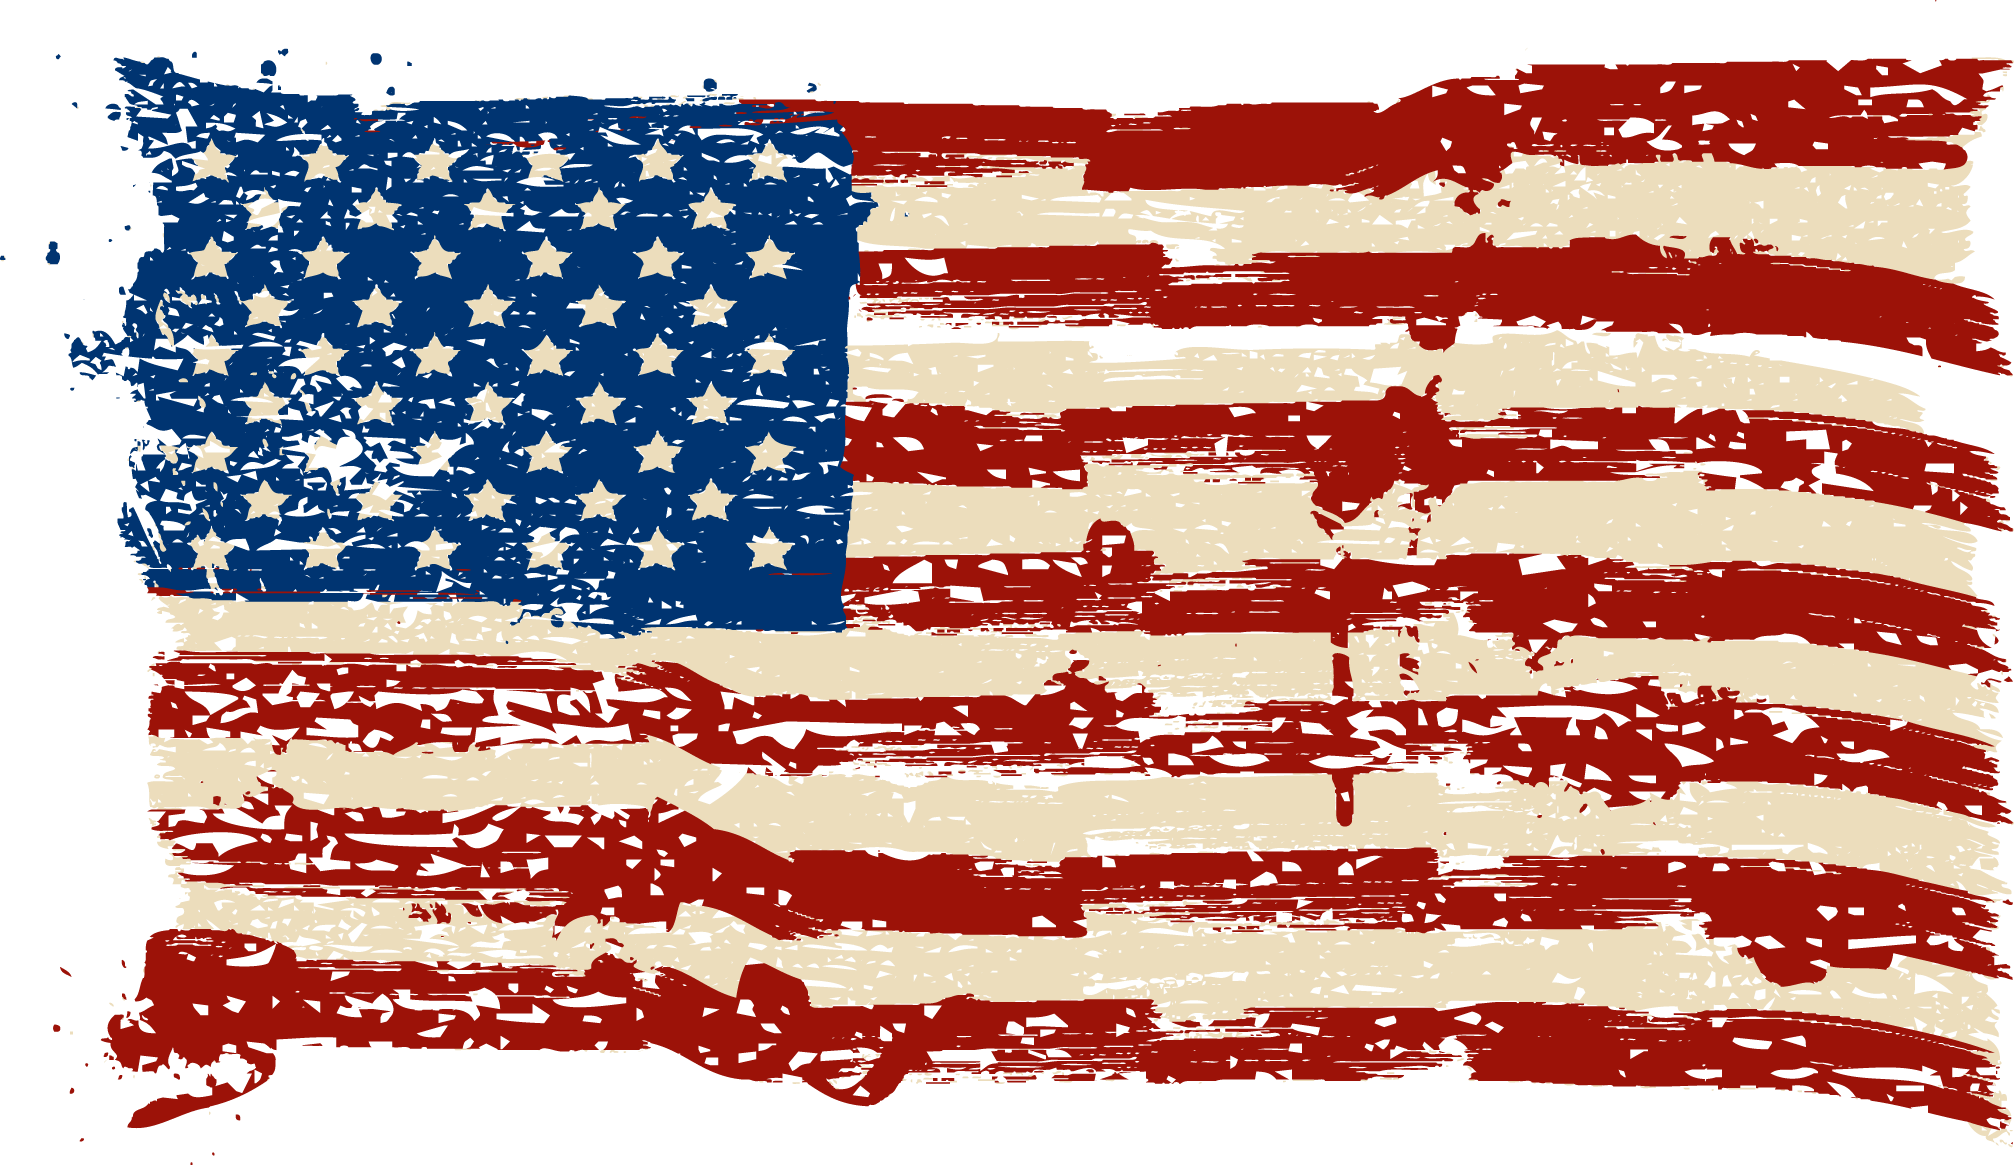 American flag png file. United states of america svg transparent stock